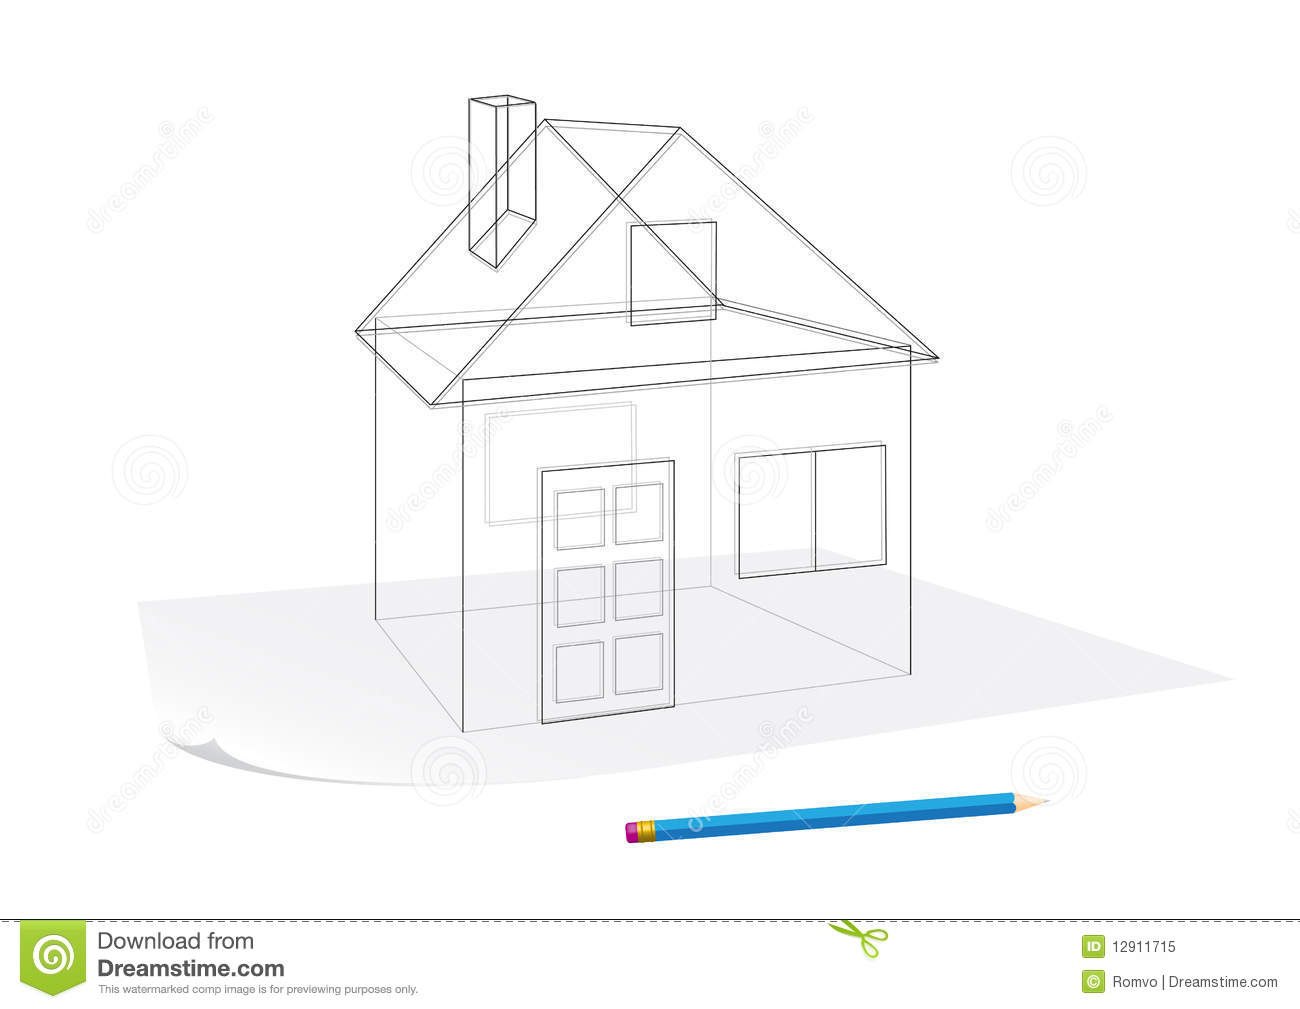 Simple house sketch royalty free stock photo image 12911715 for Minimalist house sketch